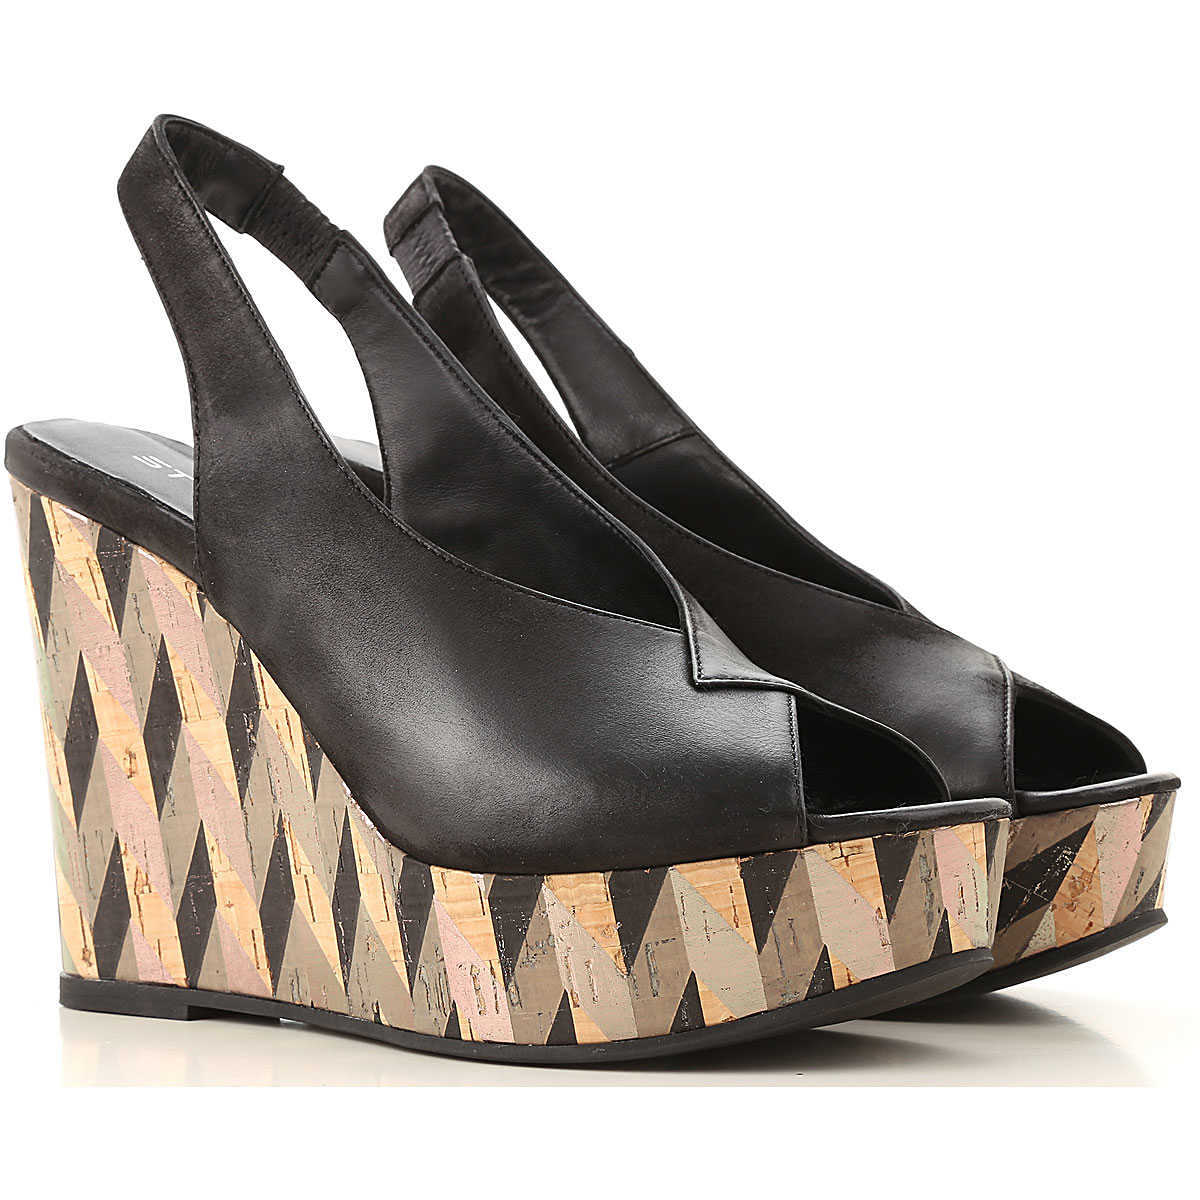 Strategia Wedges for Women On Sale Black DK - GOOFASH - Womens HOUSE SHOES